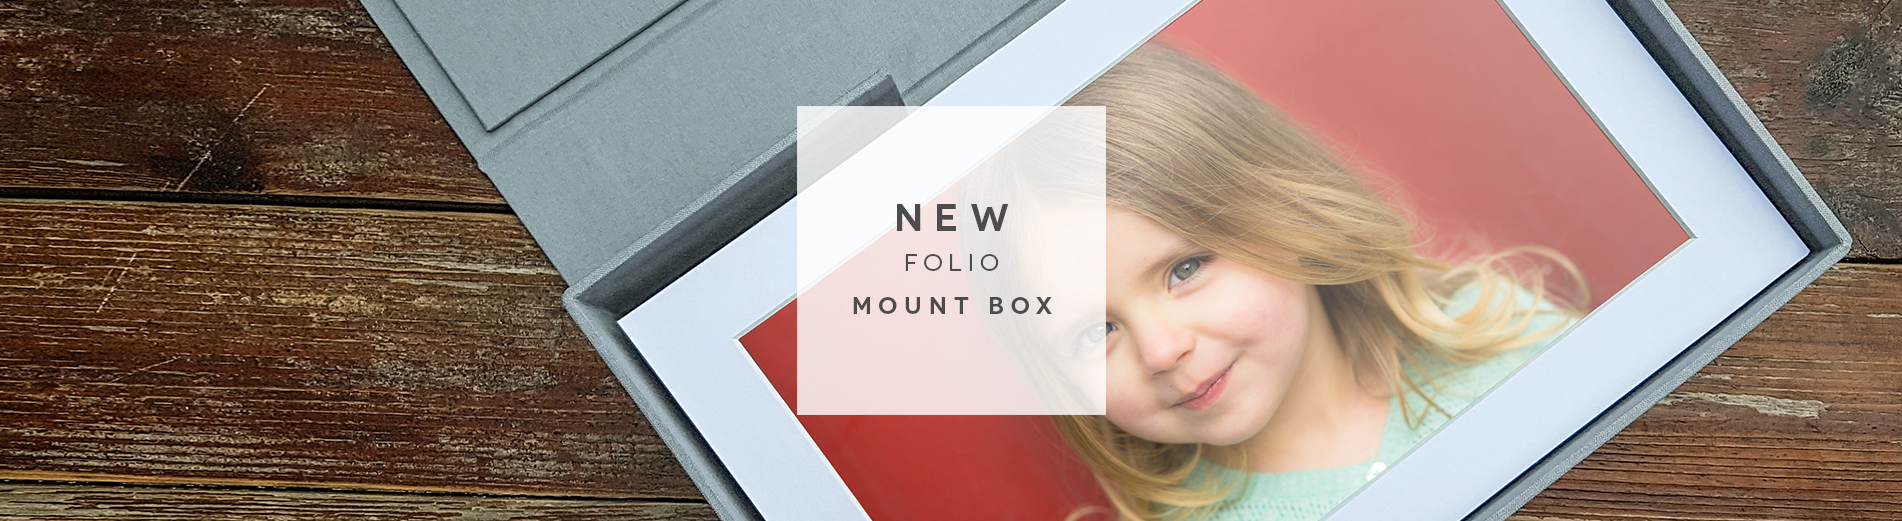 Our new mount boxes